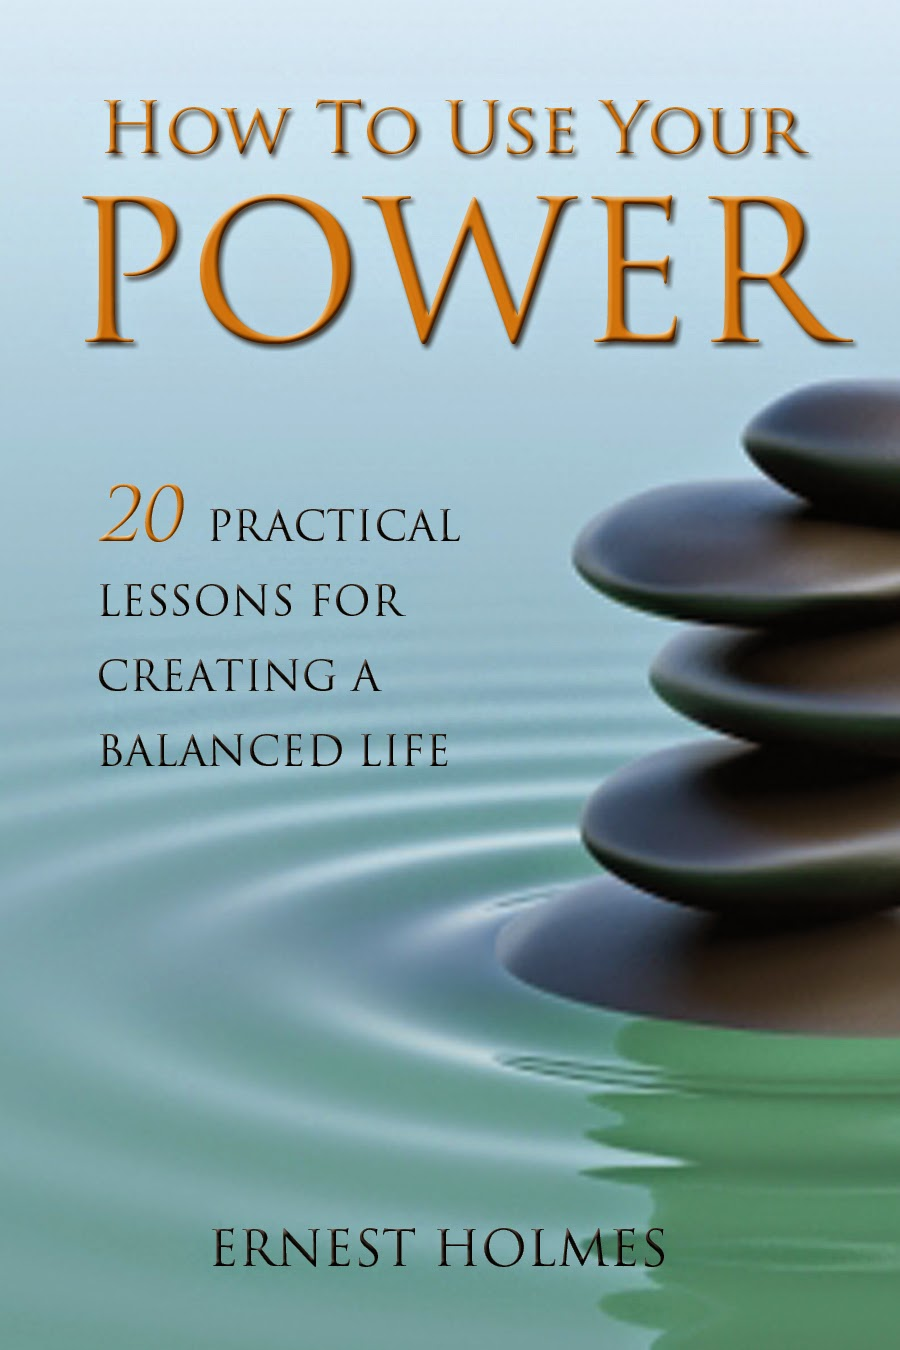 http://newtlist.com/books/how-to-use-your-power/